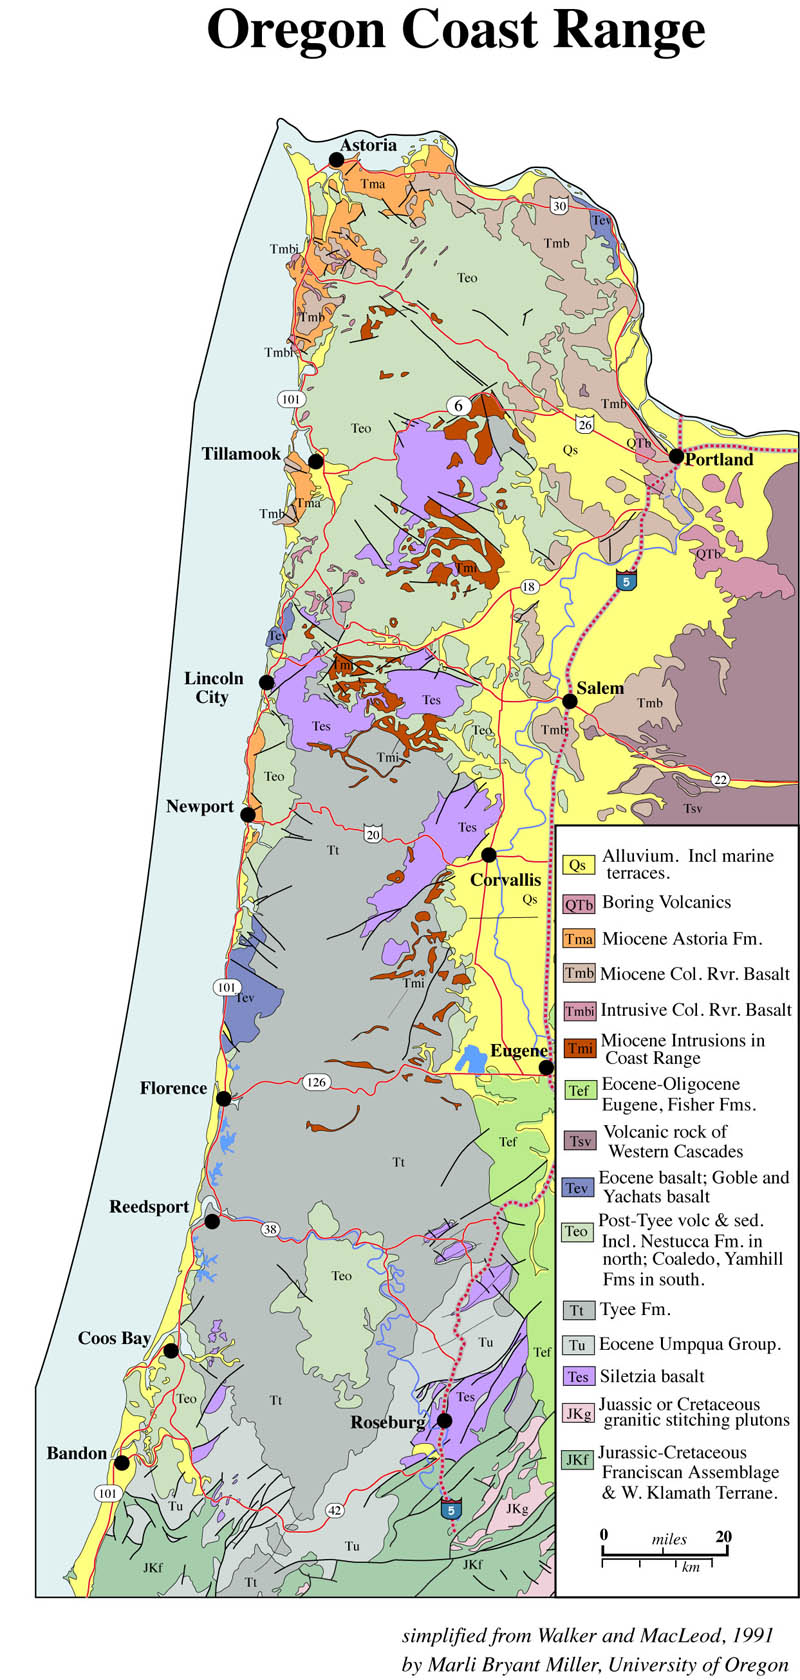 Geologic map of Oregon Coast Range